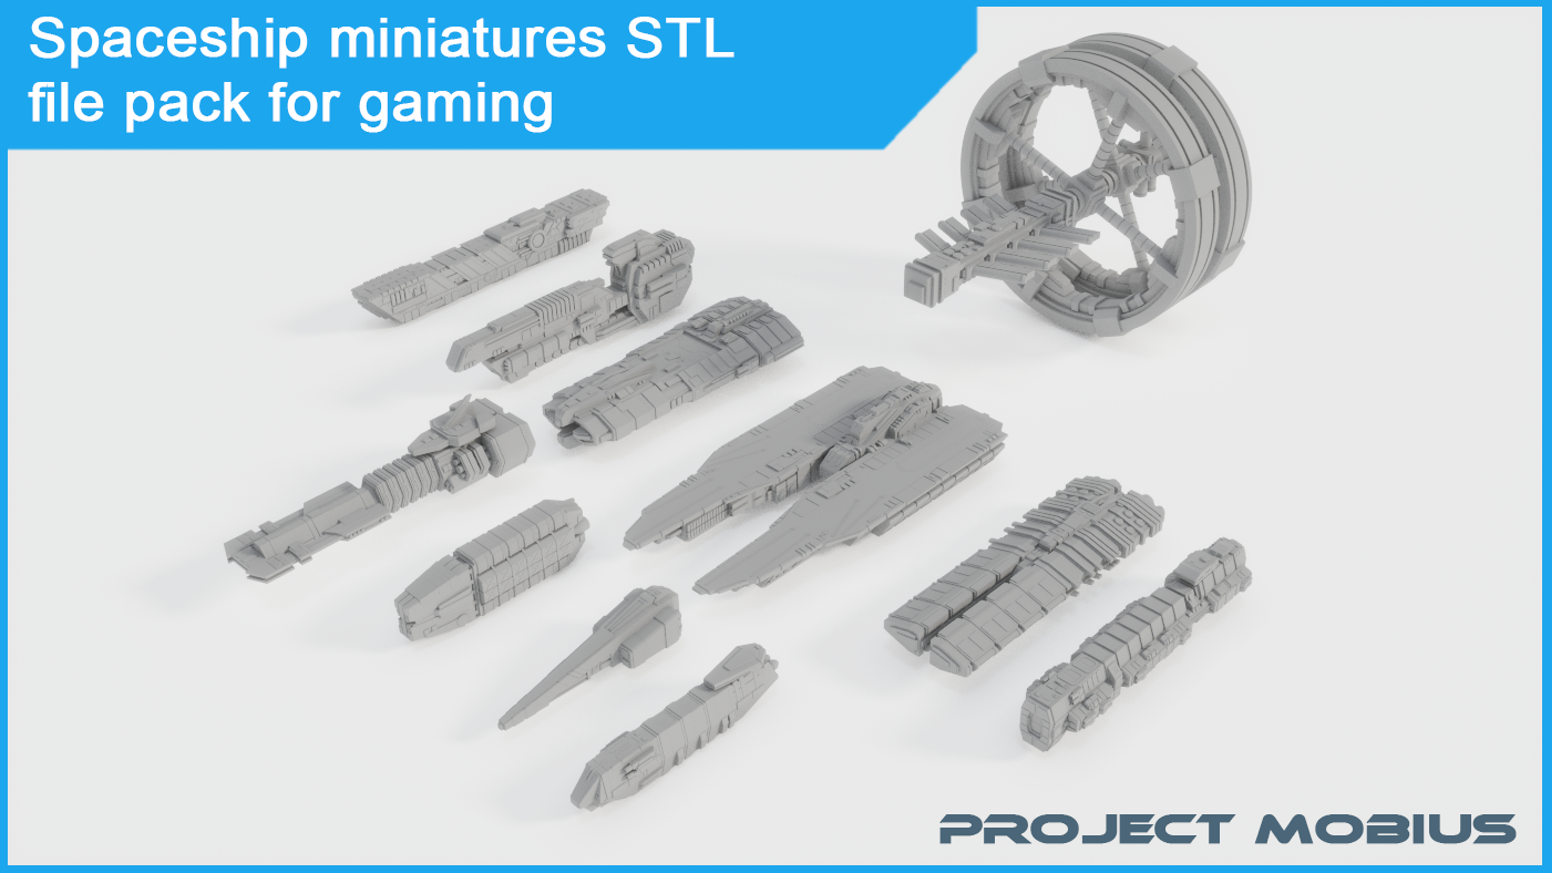 3D printed spaceship models for board gamers and anyone who is into scifi to download and print at home.